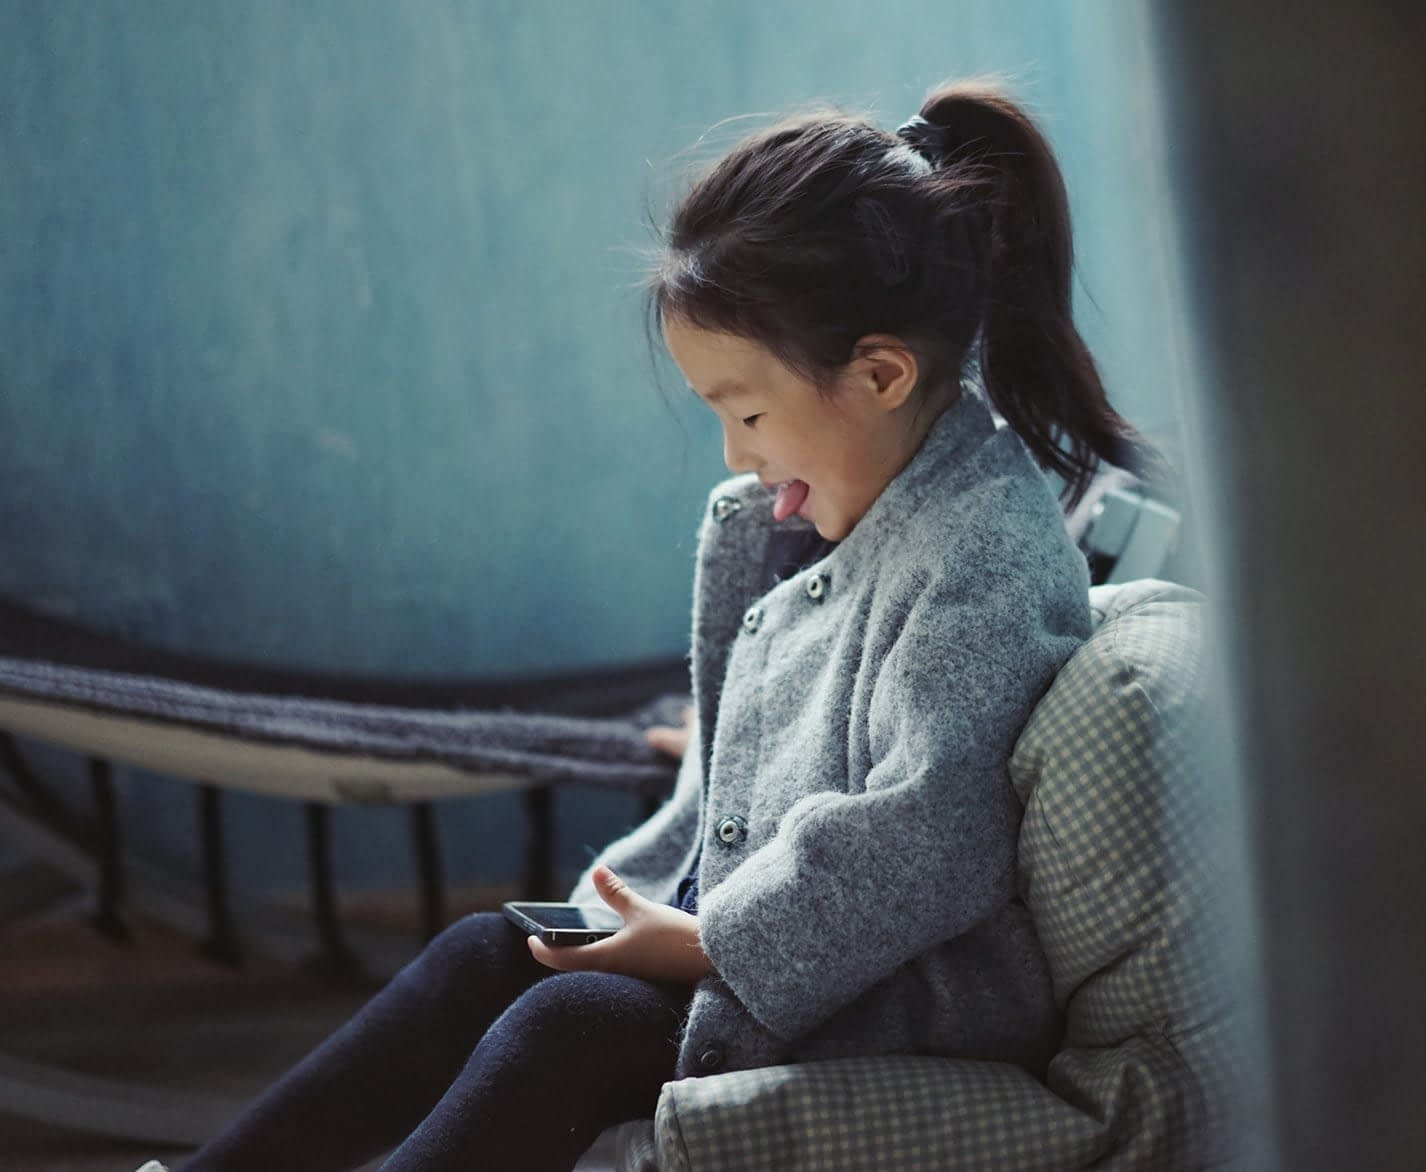 Is Blue Light Bad for Kids? What You Need to Know